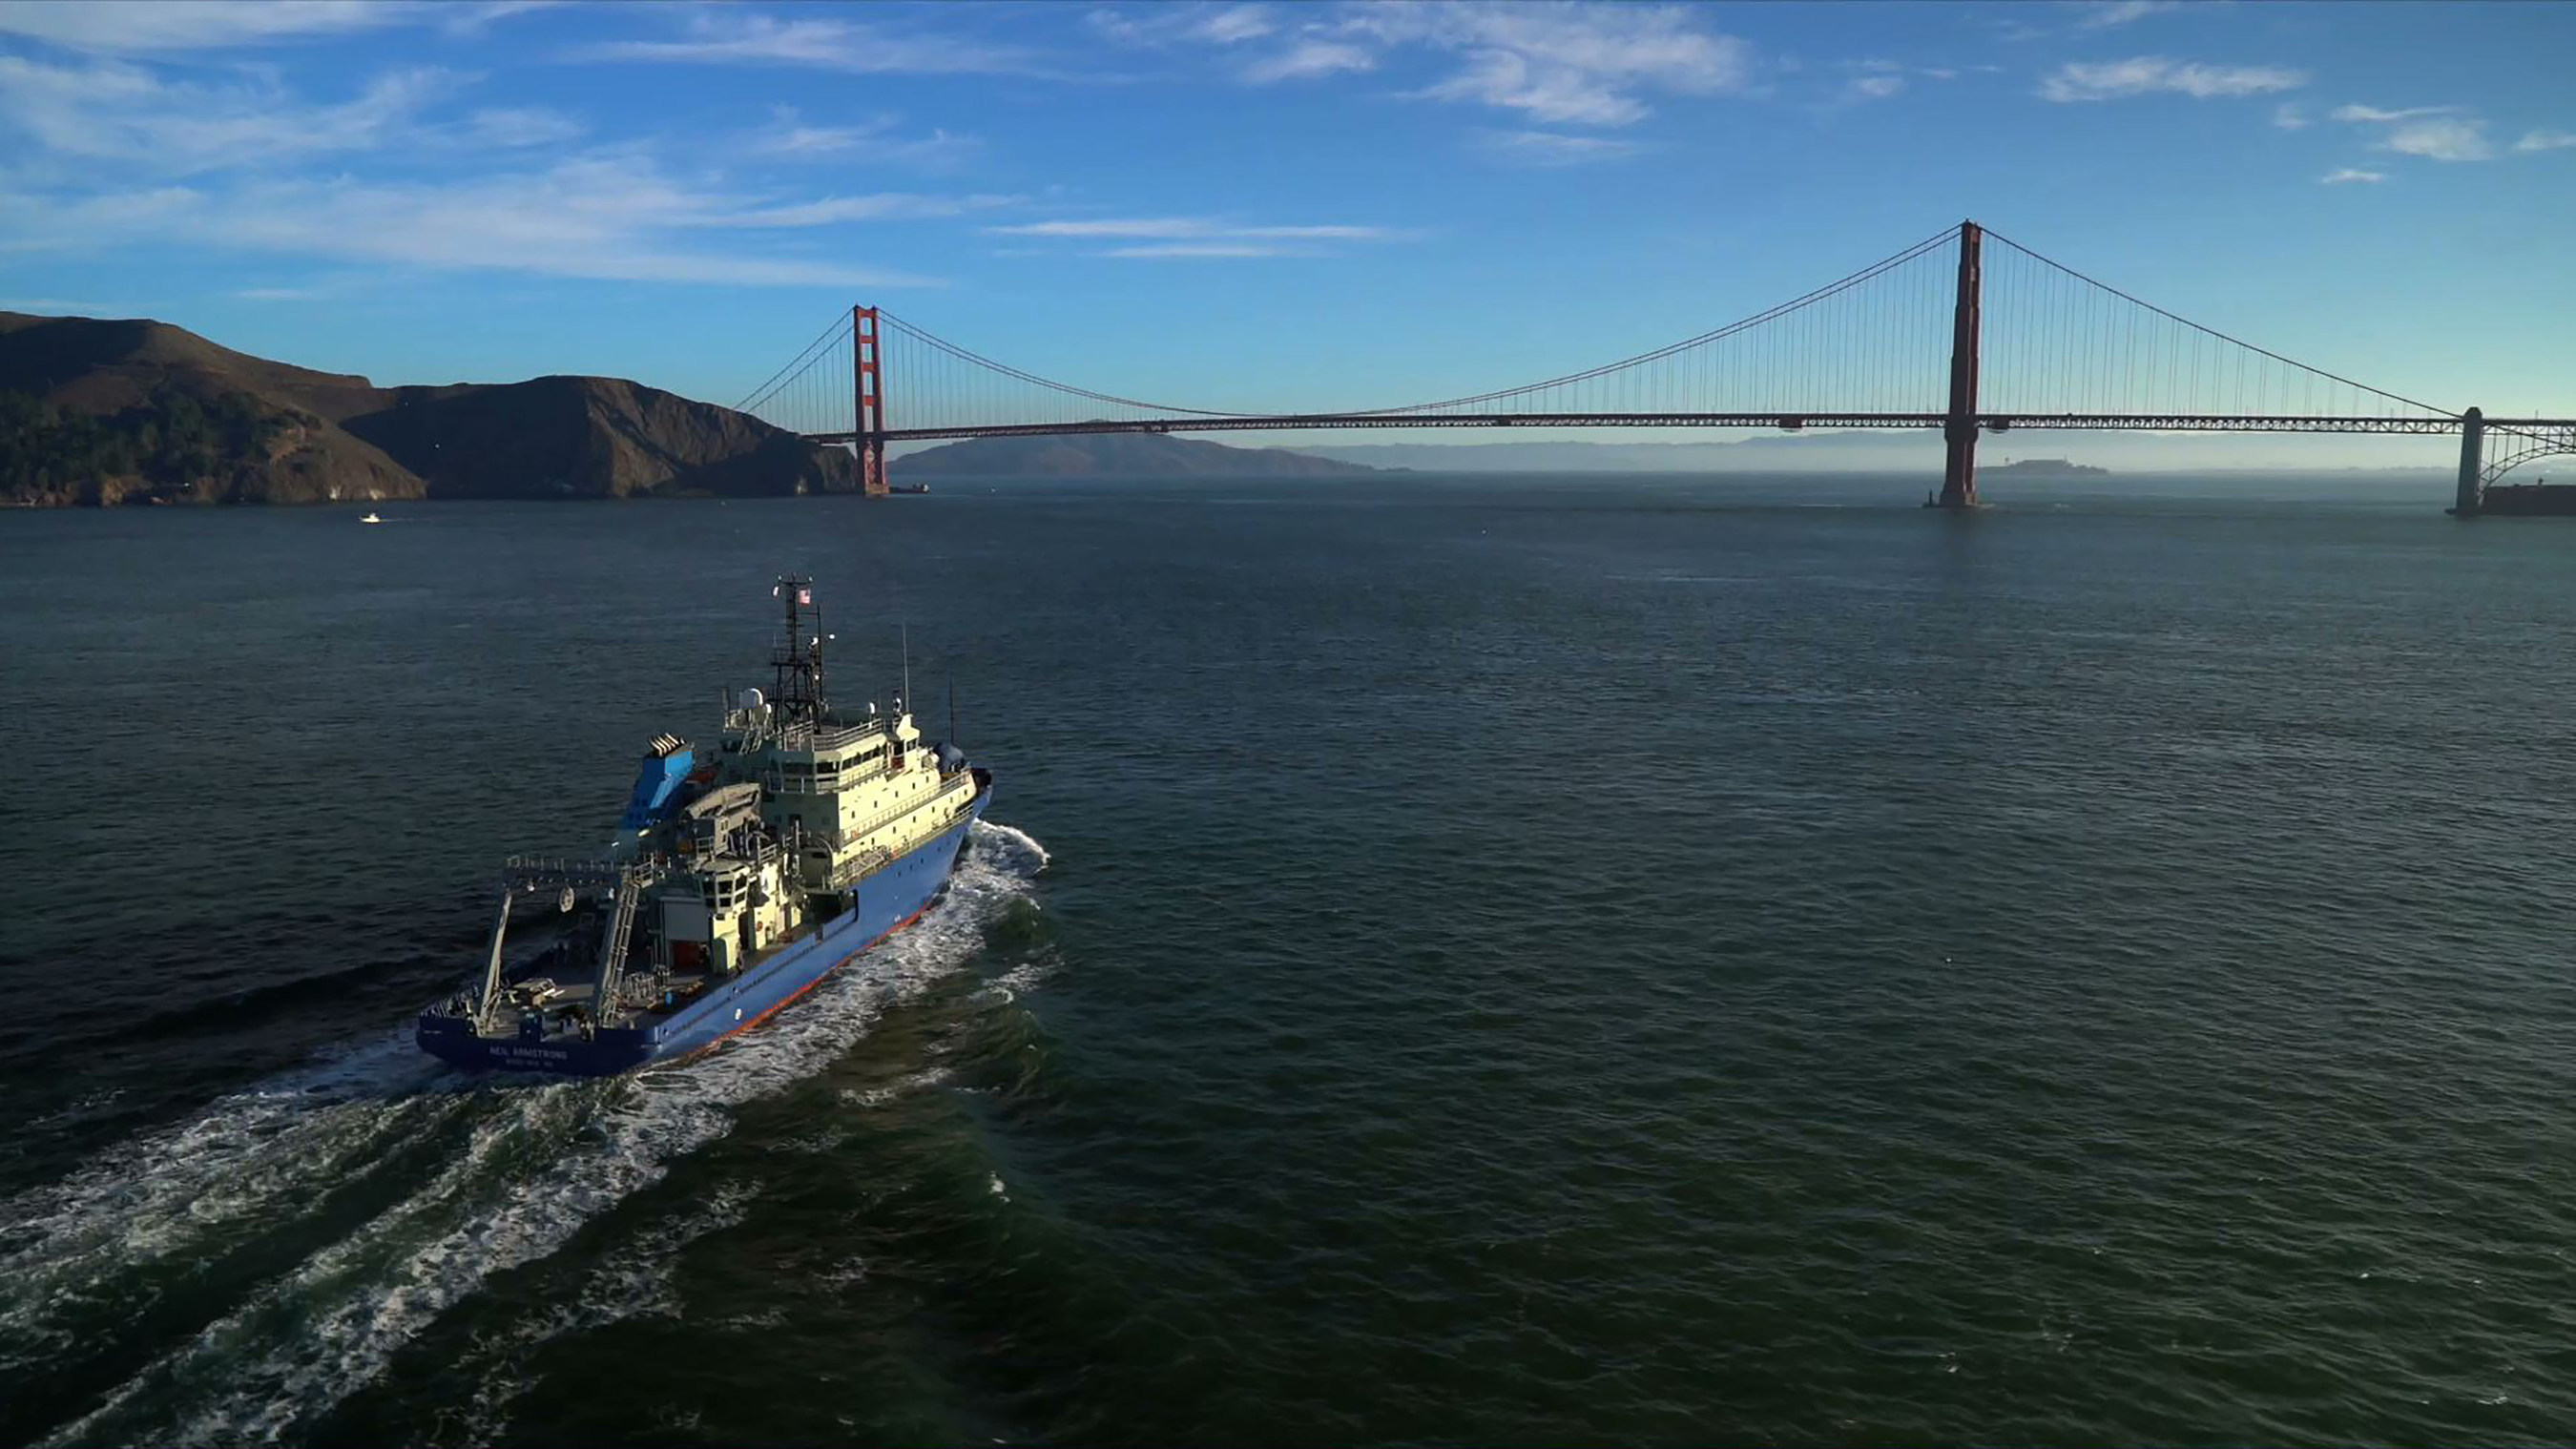 R/V Neil Armstrong approaches the Golden Gate Bridge on November 7, 2015, during the ship's maiden voyage from Anacortes, Wash. (Photo by Bay Aerial, (C)Woods Hole Oceanographic Institution)